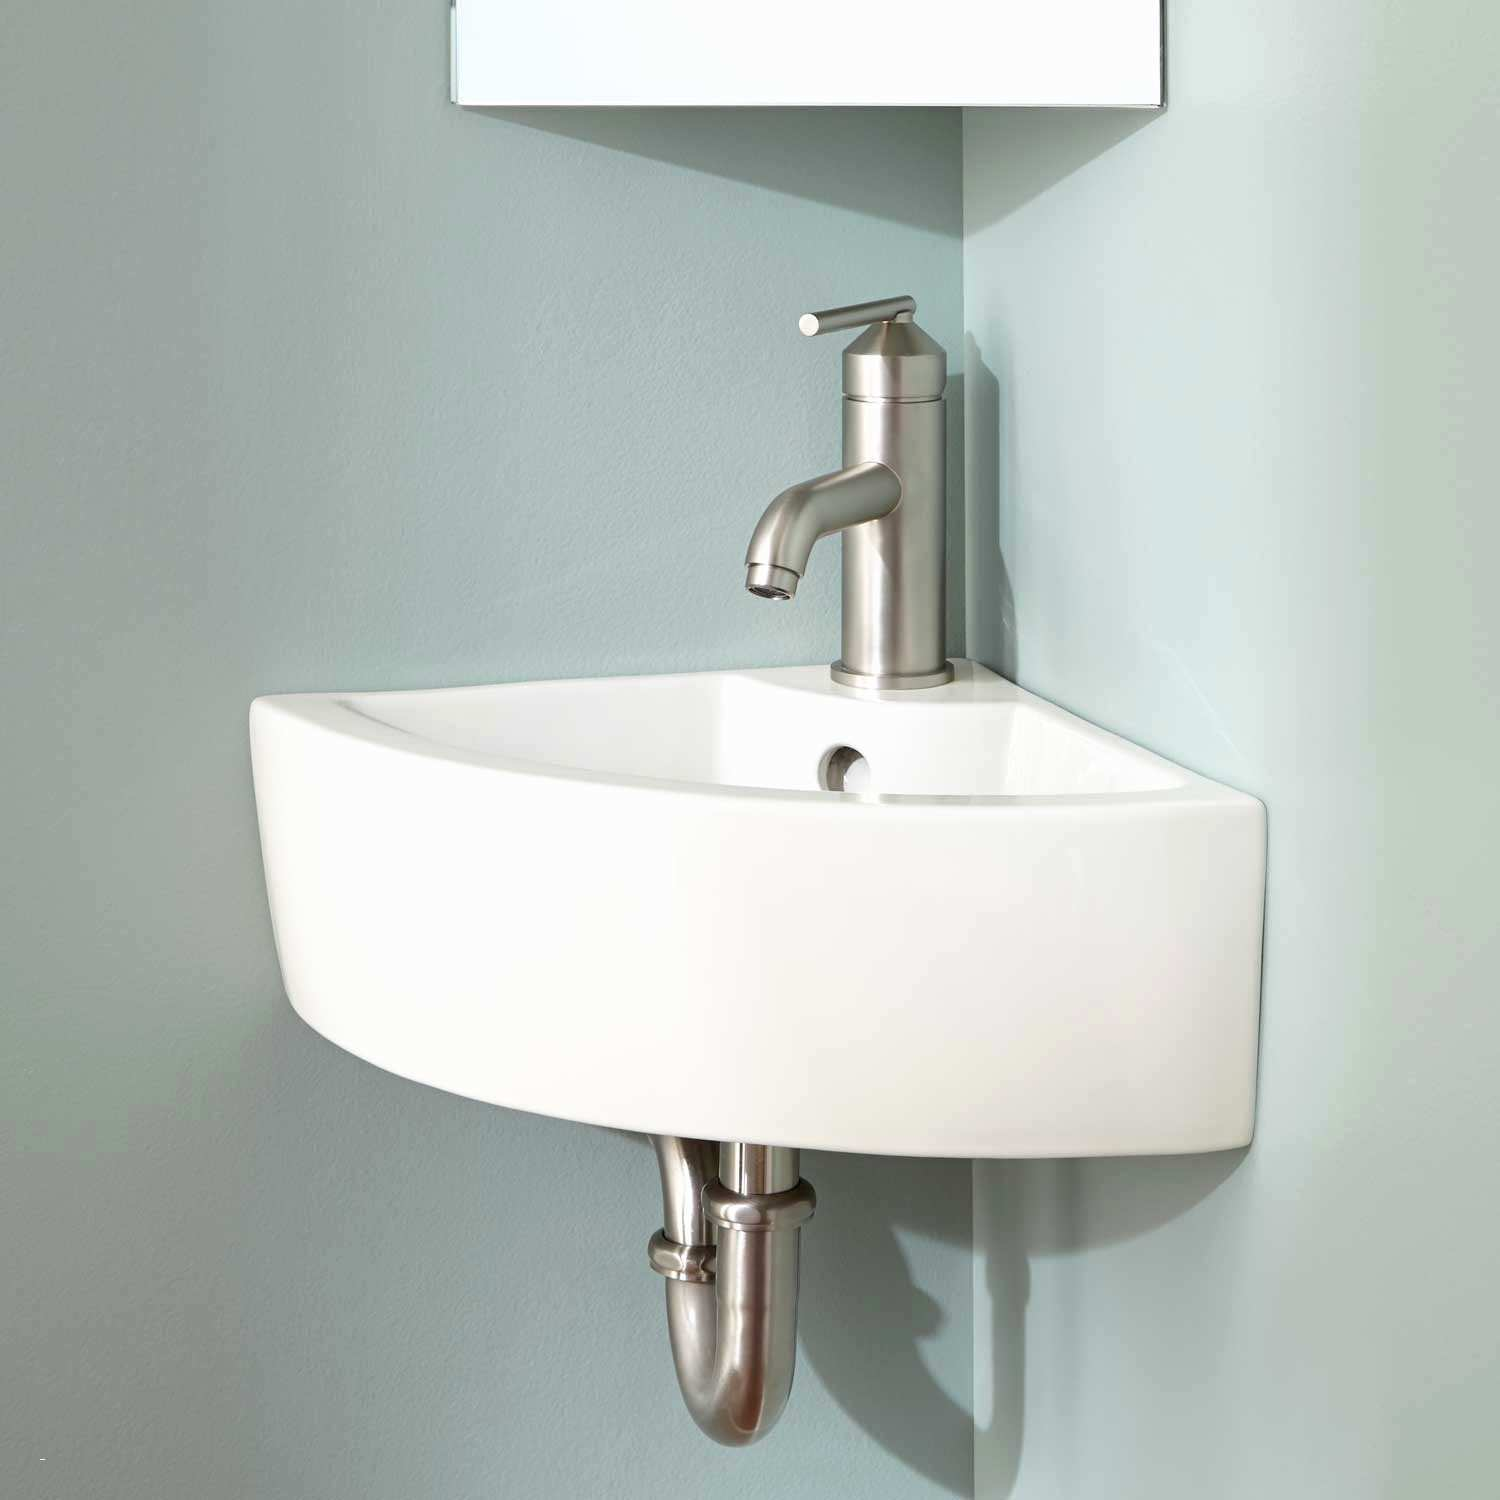 Very Small Bathroom Sinks Best Inspirational L Biscuit Wall Mount